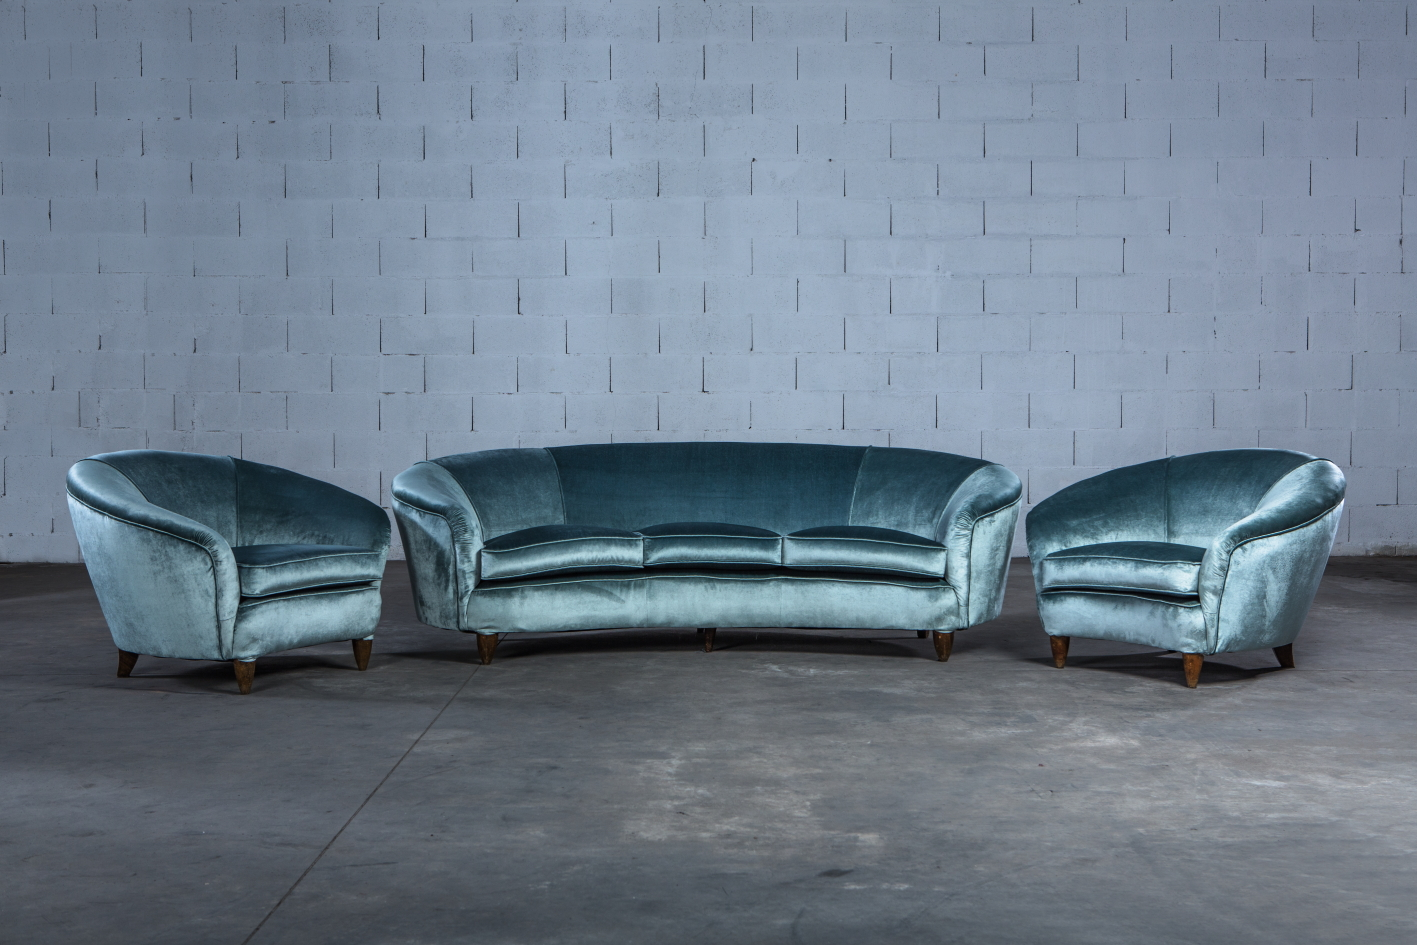 Three seater Italian curved sofa - 1940s - front view